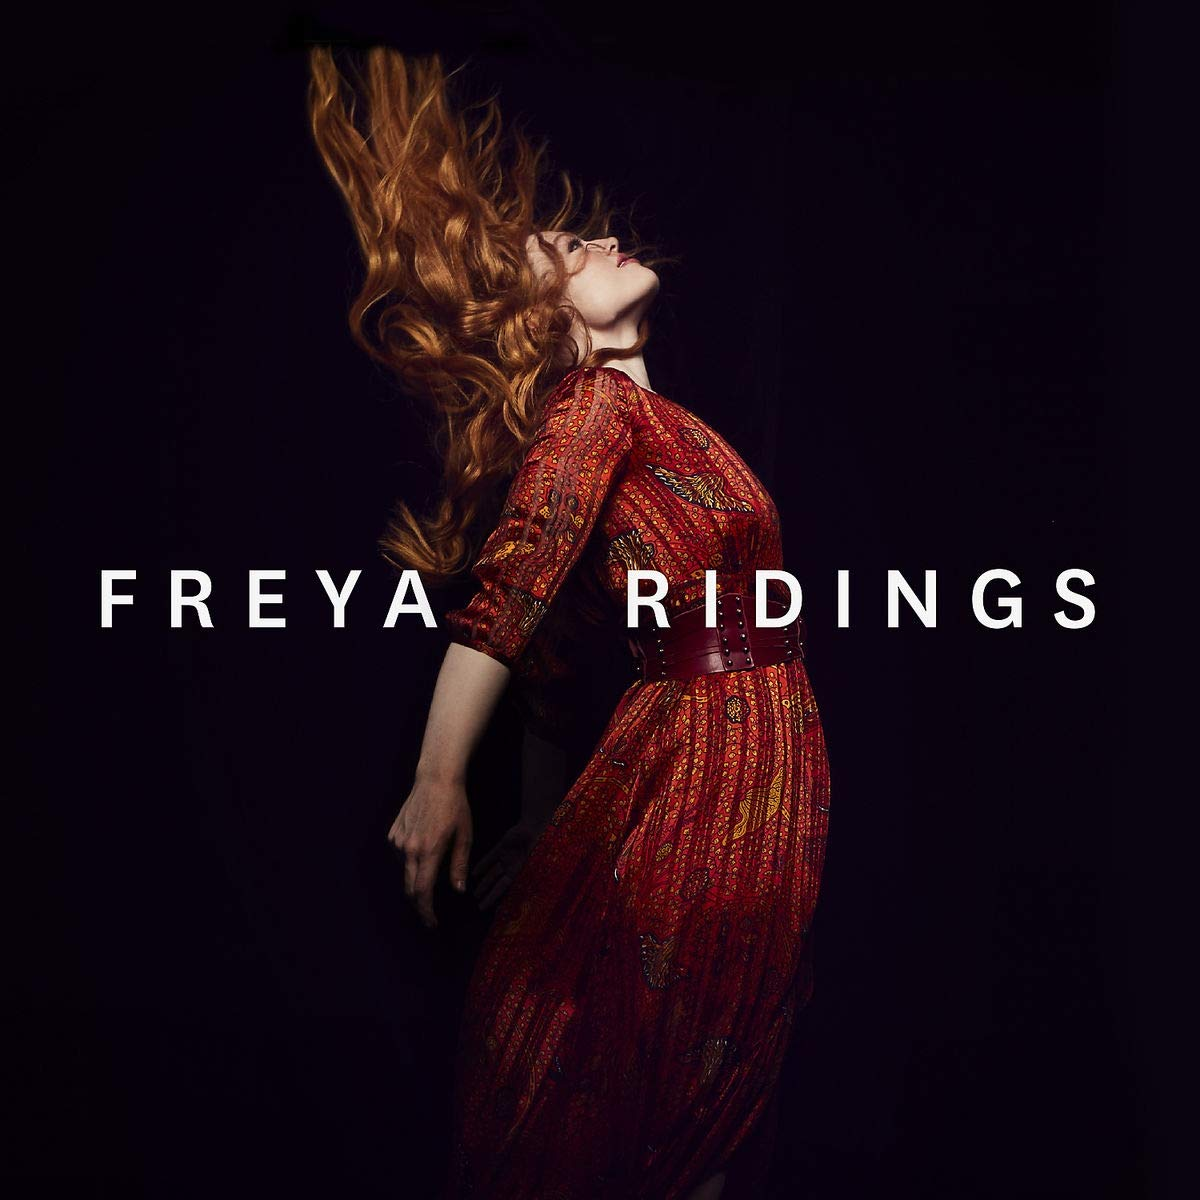 Freya-Ridings